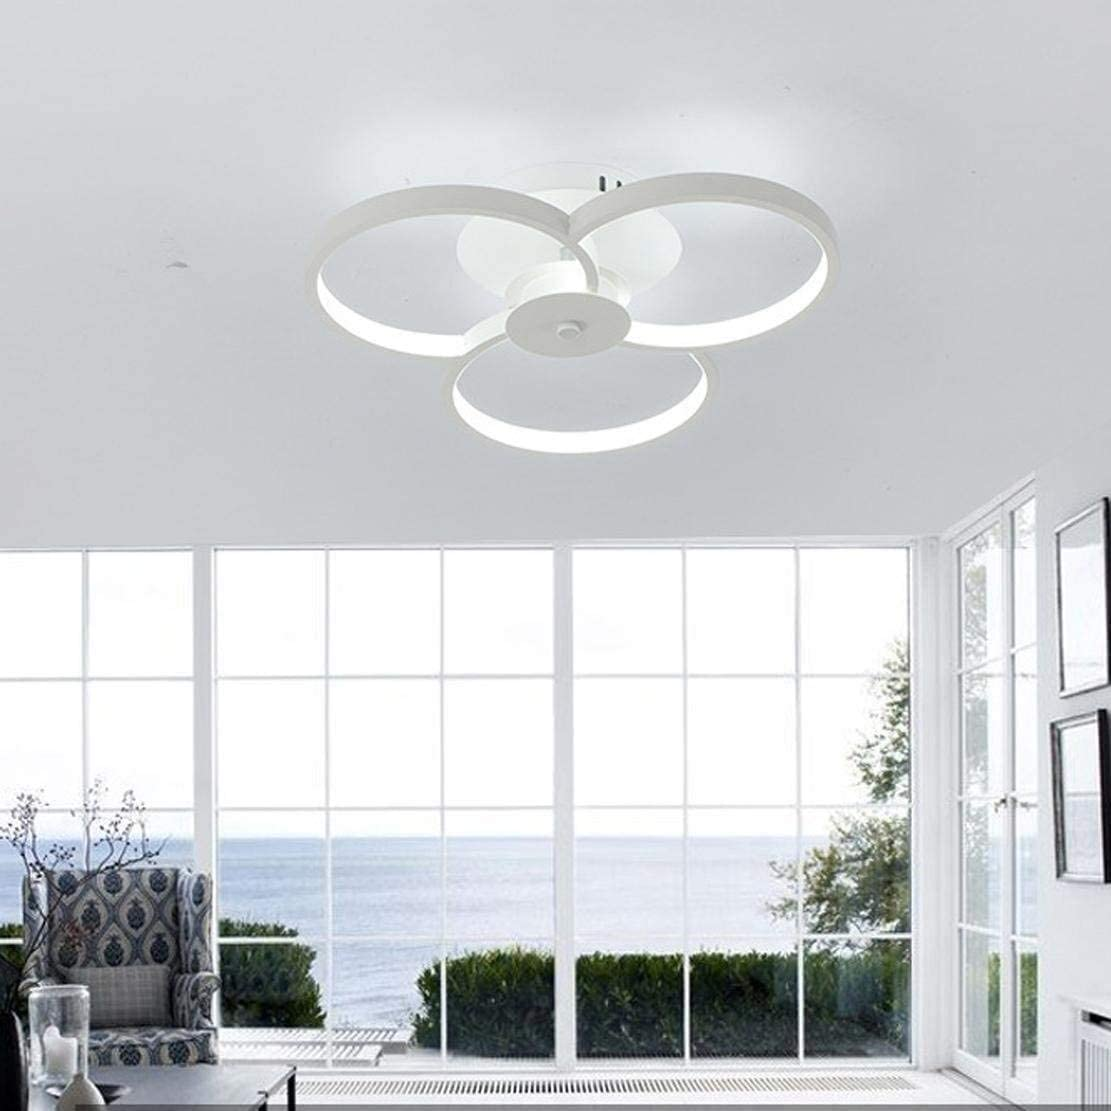 HTL Decorative Lights Led Ceiling Lamp Metal Acrylic Modern Design Warm and Romantic Creative 3-Ring Ceiling Light Indoor Decorative Lighting Fixture for Living Room Bedroom Kitchen,Stepless Dimming